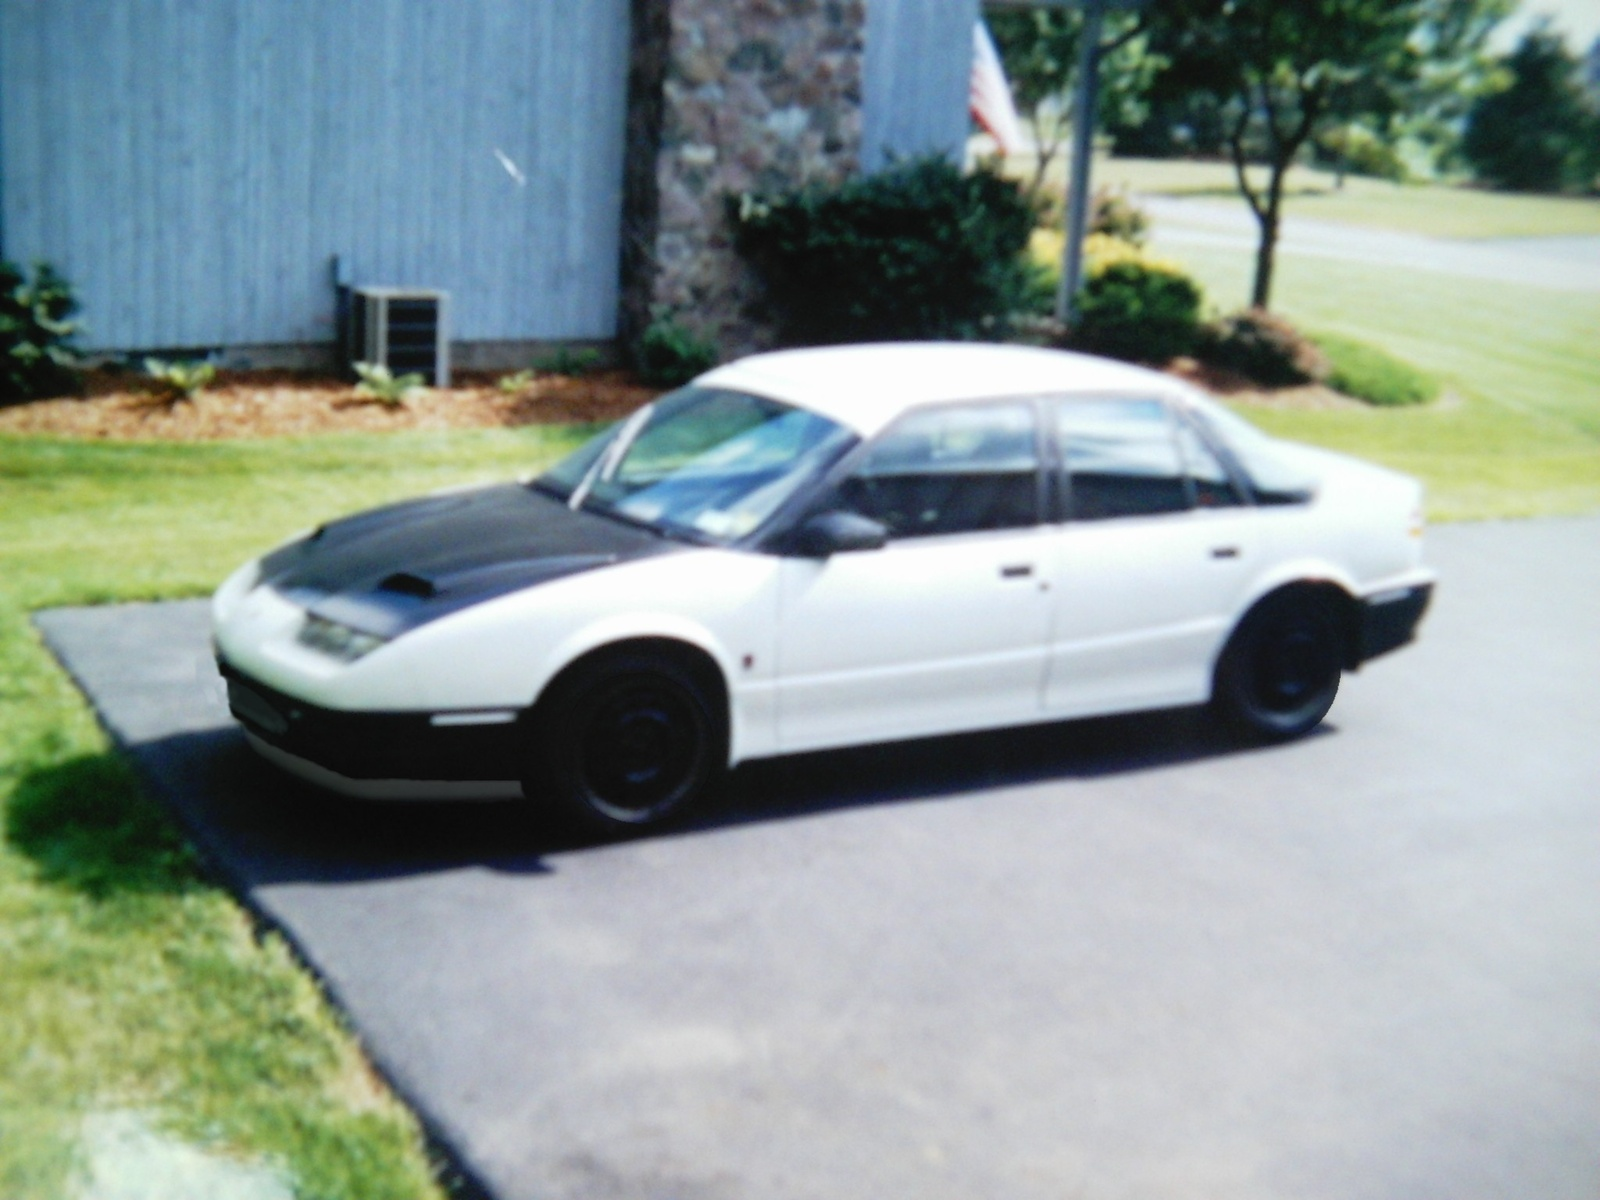 similiar 1994 saturn fan keywords besides 2002 saturn s series sc1 coupe on saturn l100 wiring diagram